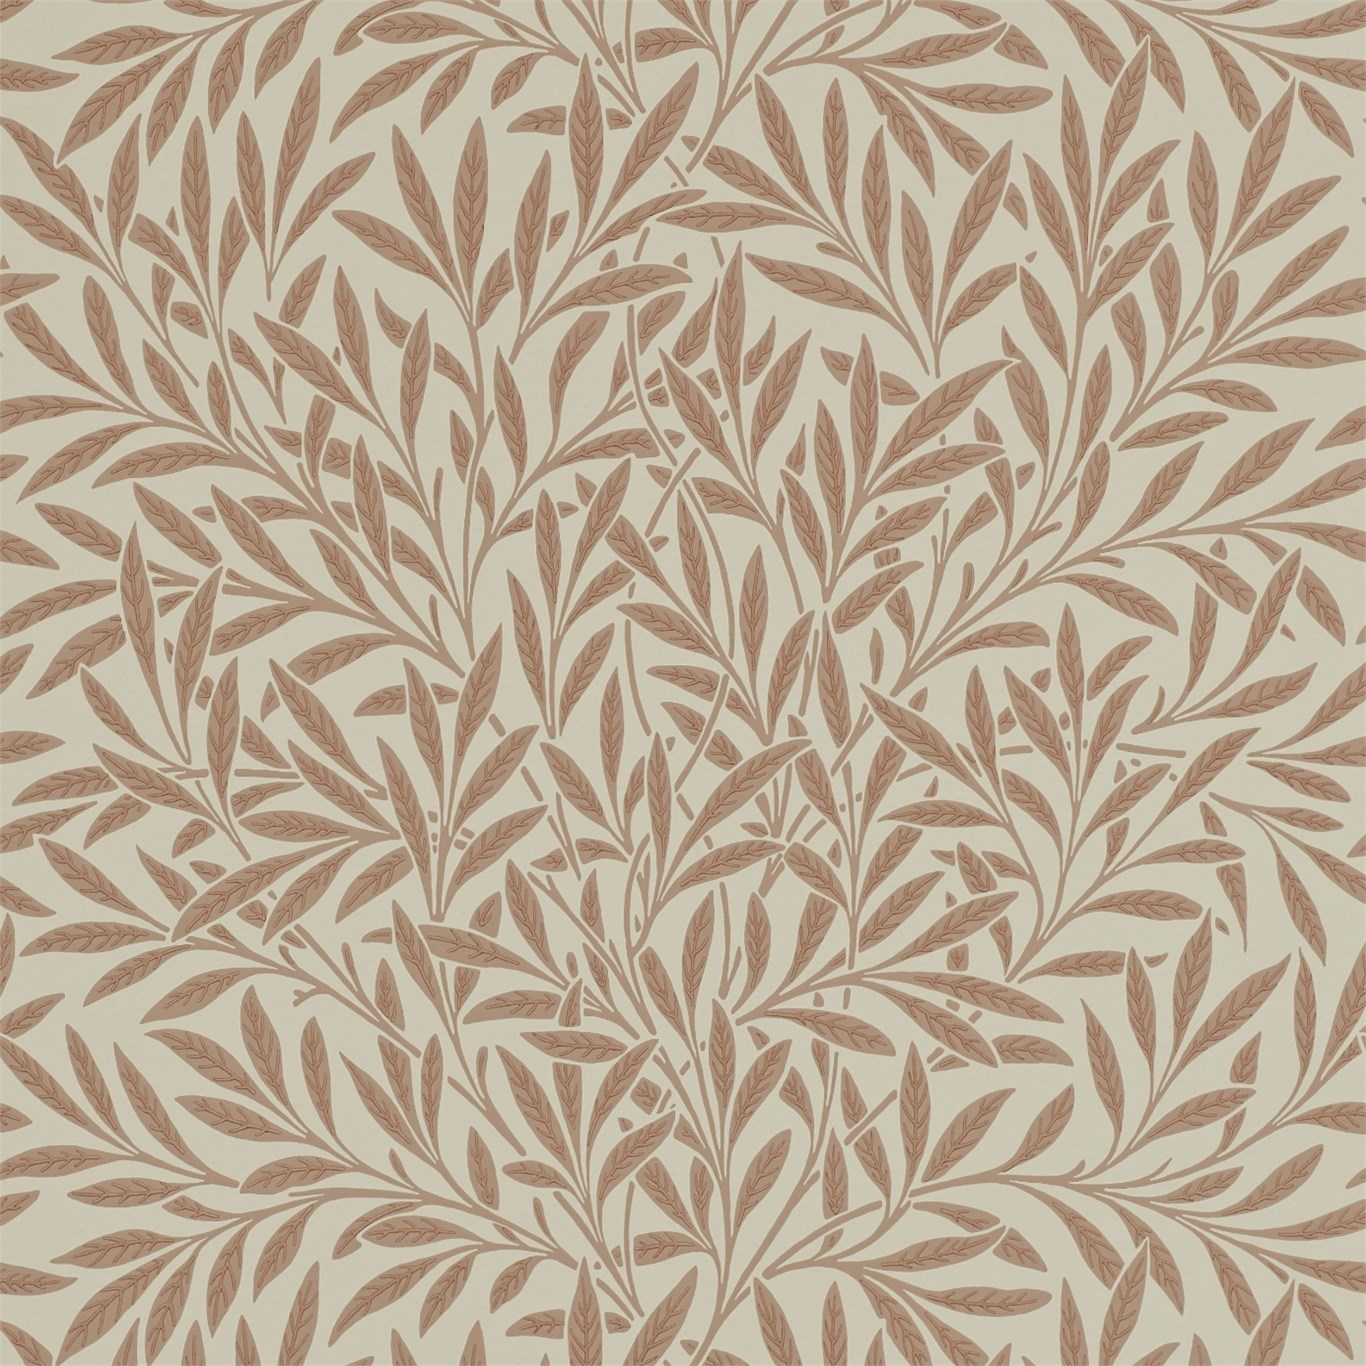 Image of Morris & Co Willow Russet Wallpaper 210381